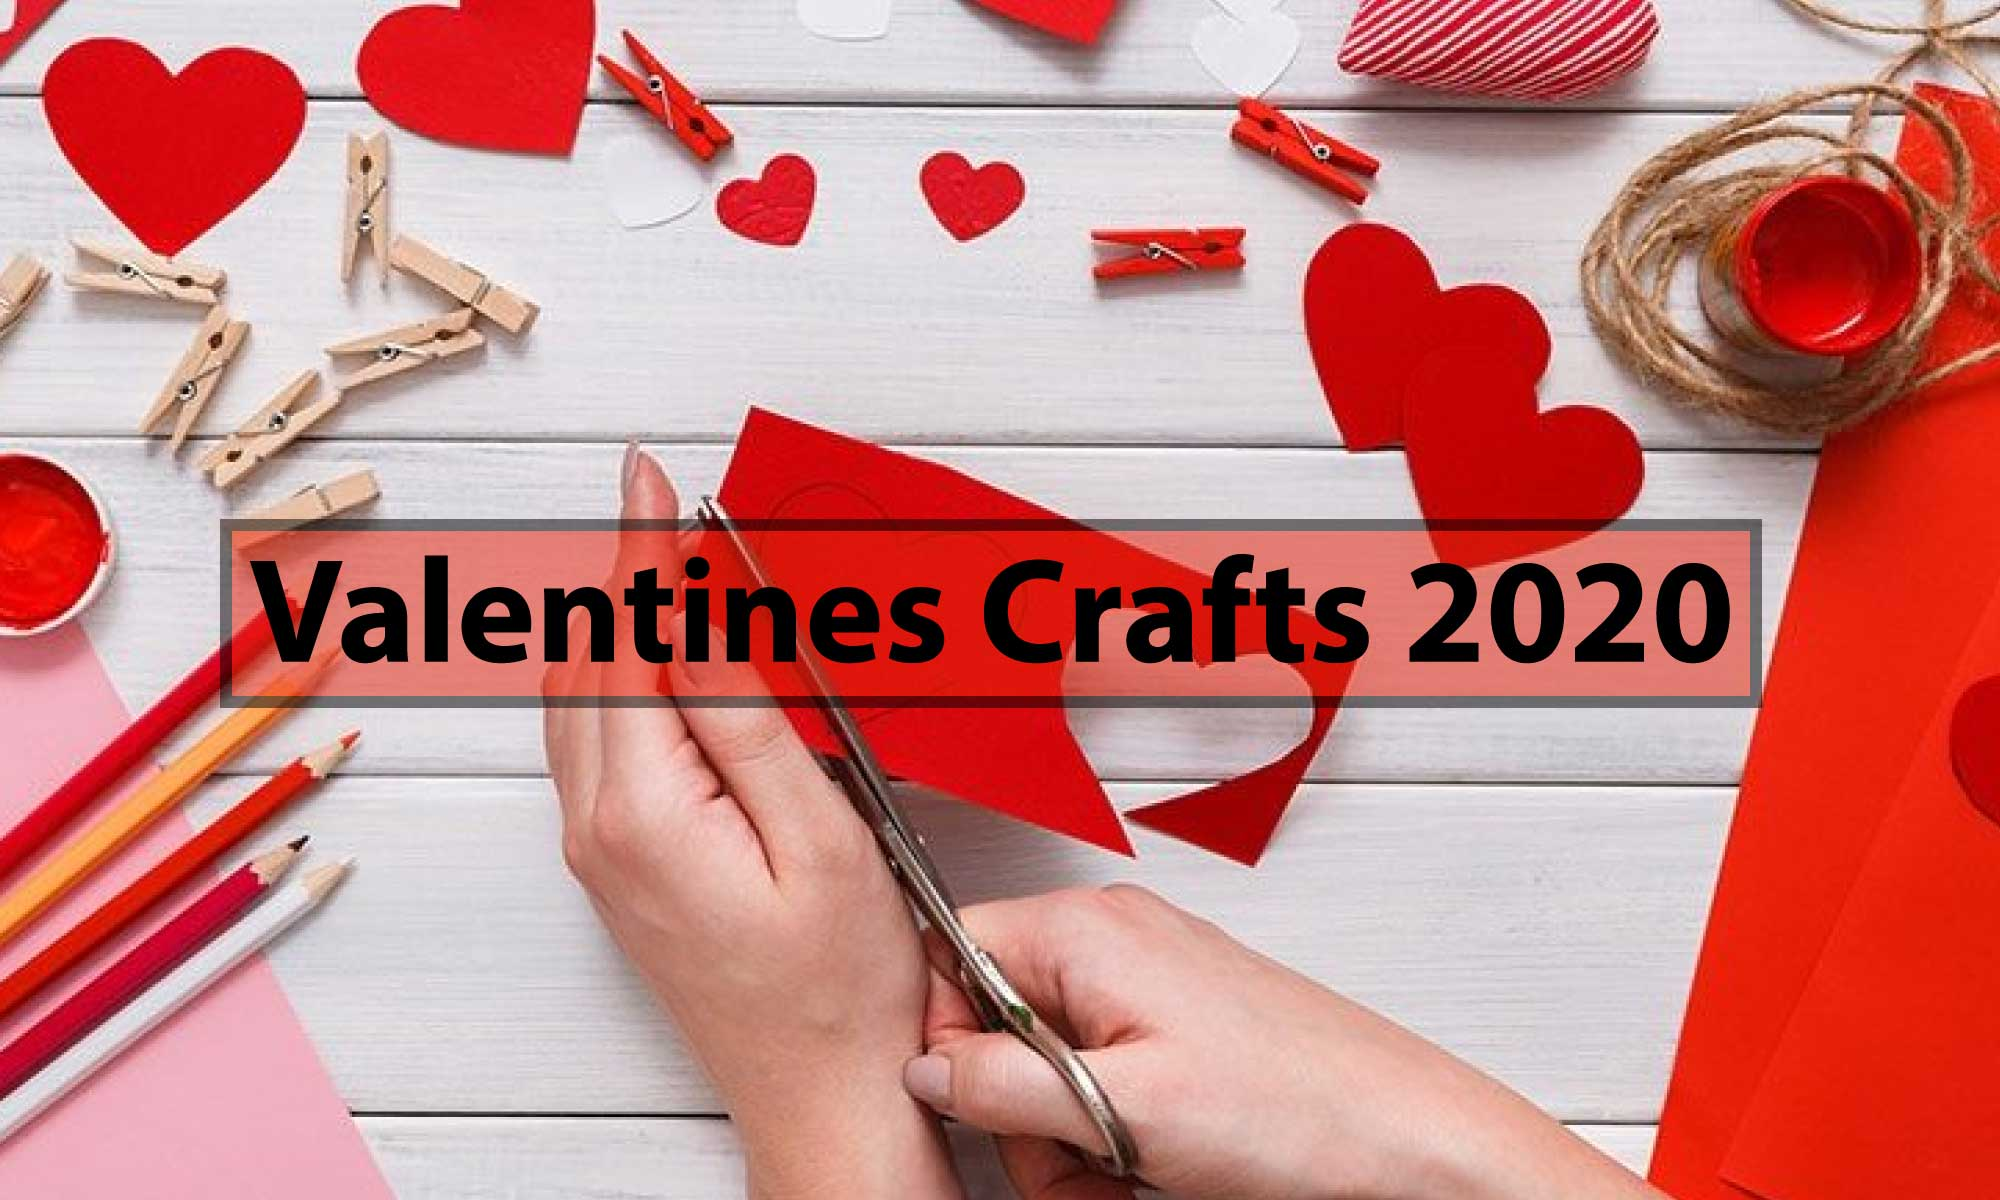 Valentines-Crafts-2020